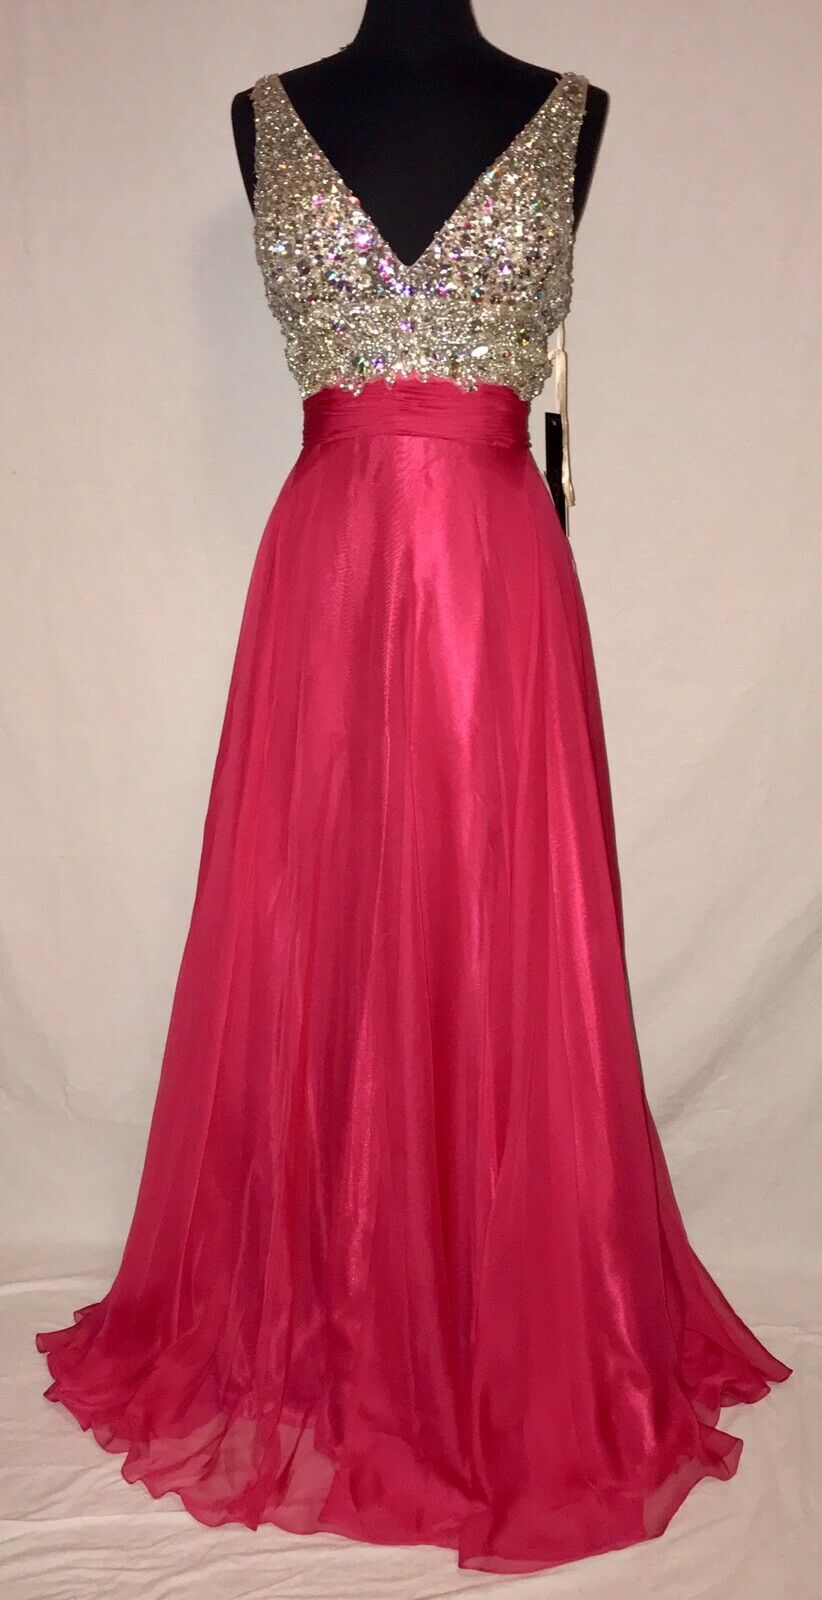 COYA CL1240 PROM PARTY FORMAL PAGEANT DRESS XL EXTRA LARGE WATERMELON PINK